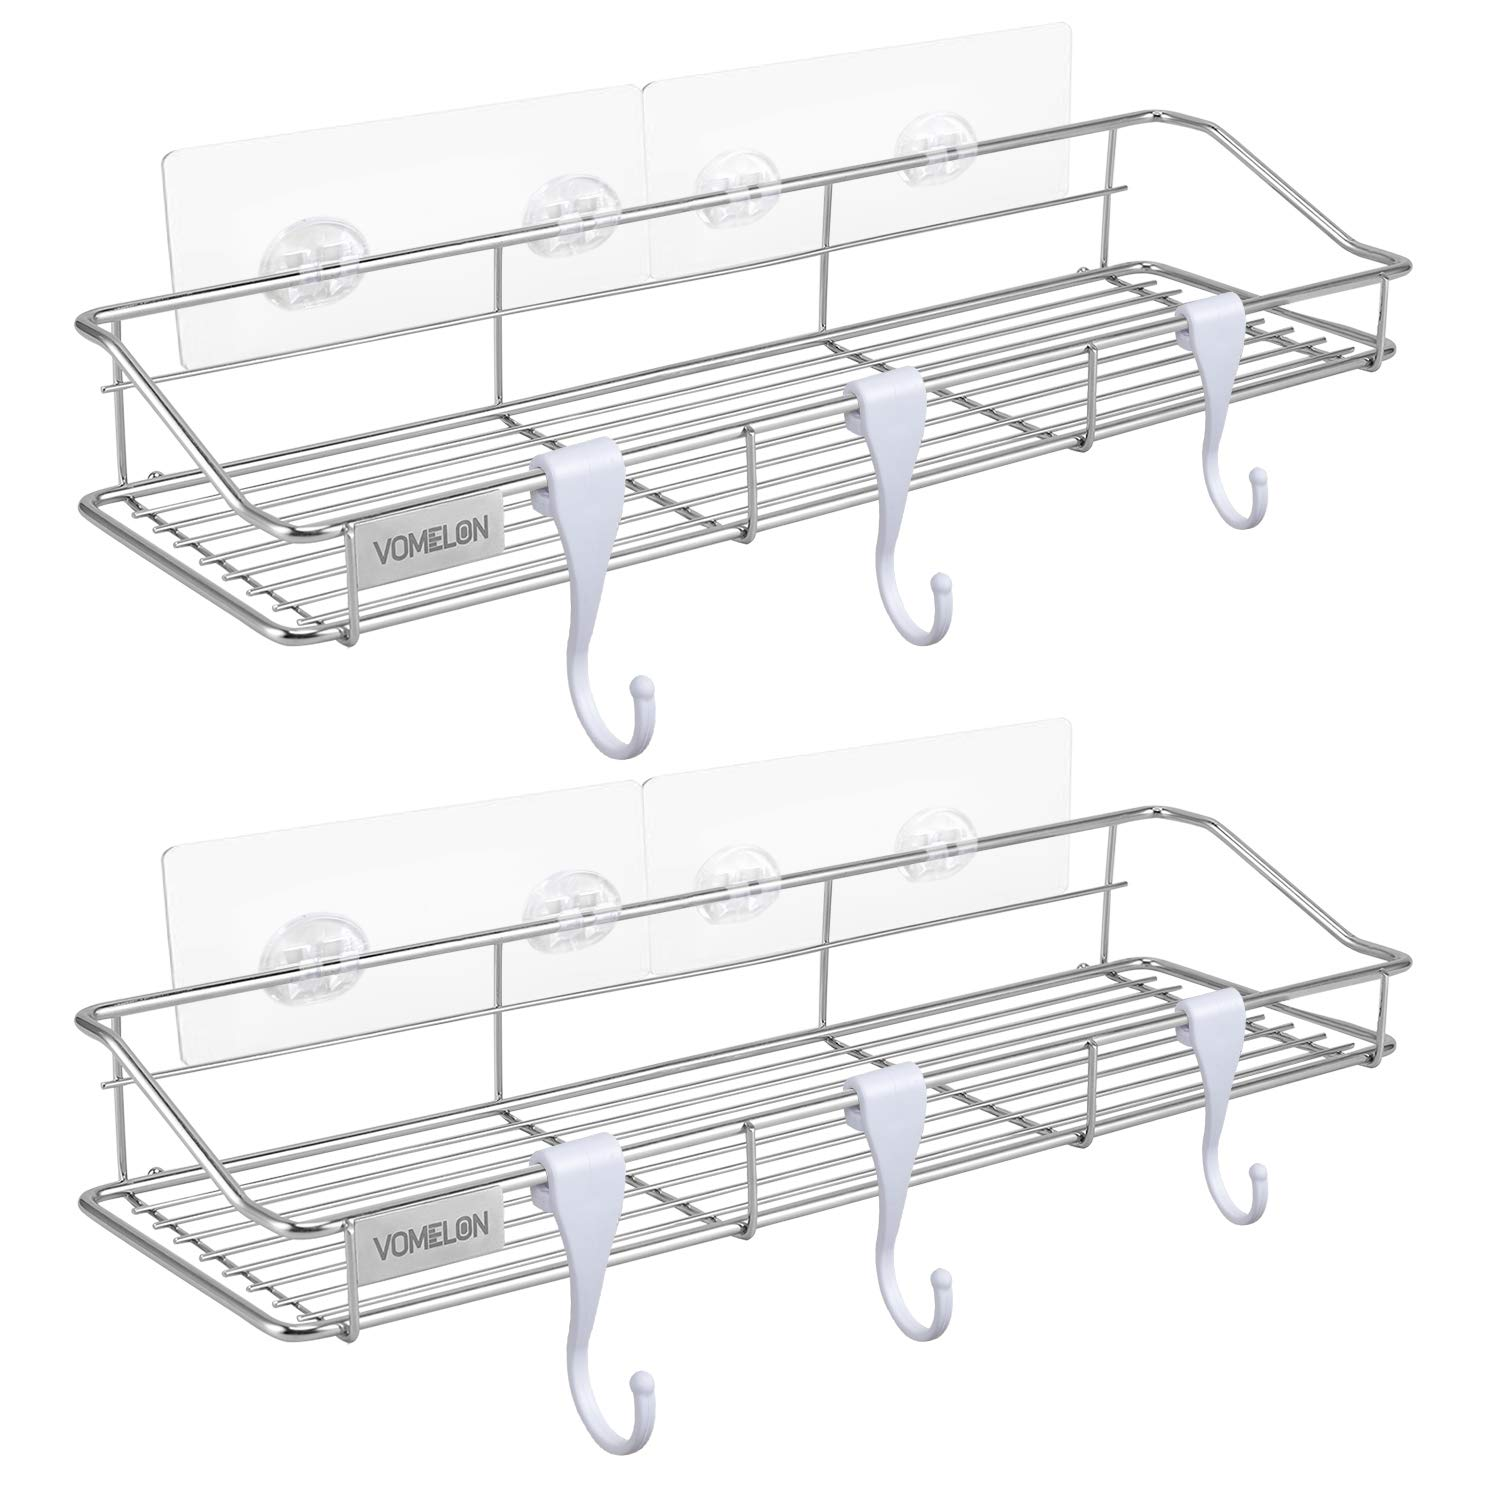 Bathroom Organizer,2 Pack Adhesive Bathroom Shelf Extra Large 16''X4.75'' Shower Caddy Shower Storage shelf with 8 Towel Hooks, No Wall Damage SUS304 Stainless Bathroom shelving Racks,Kitchen Caddy Rack